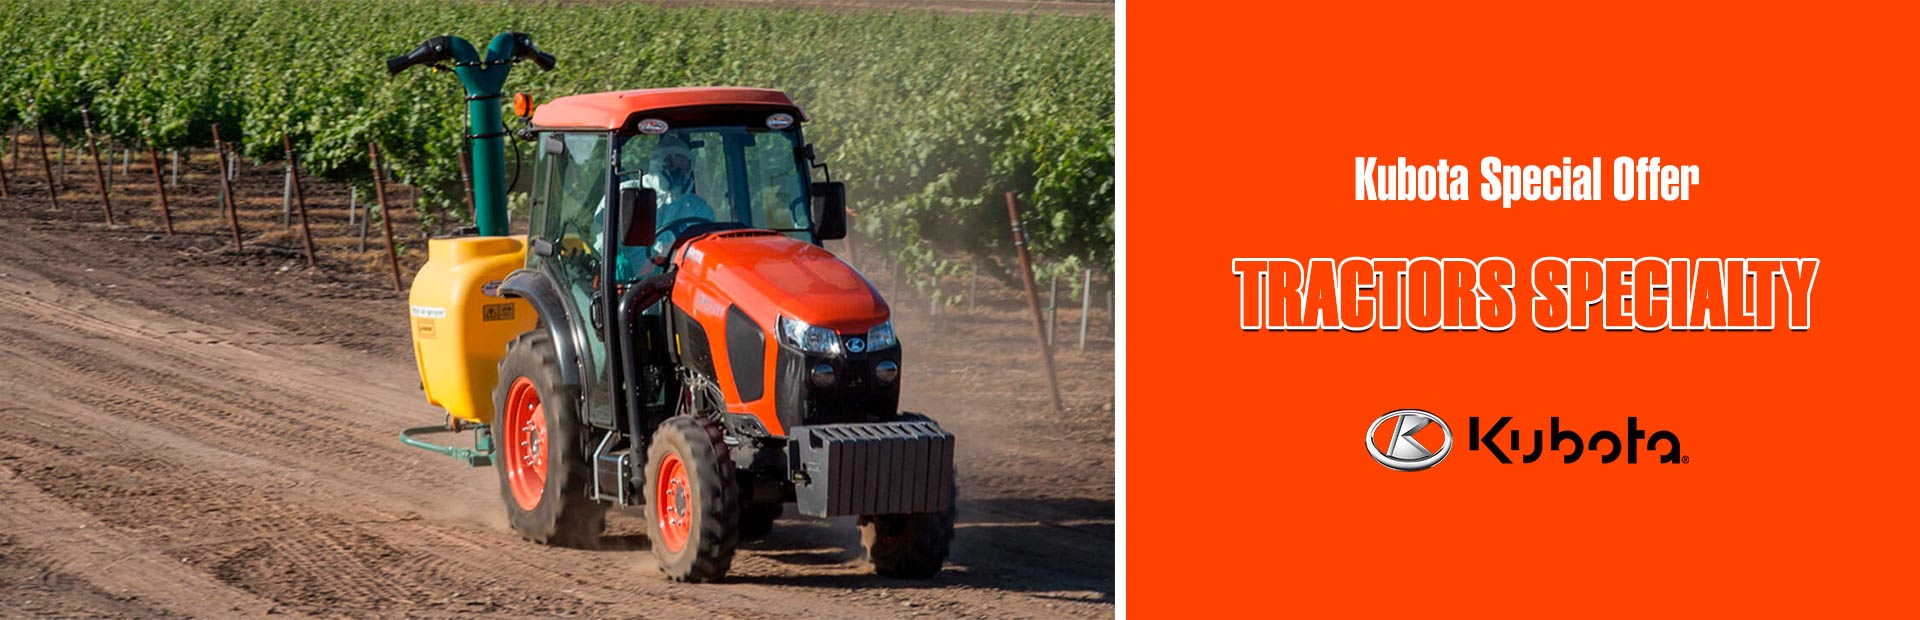 Kubota: Kubota Special Offer - Tractors Specialty